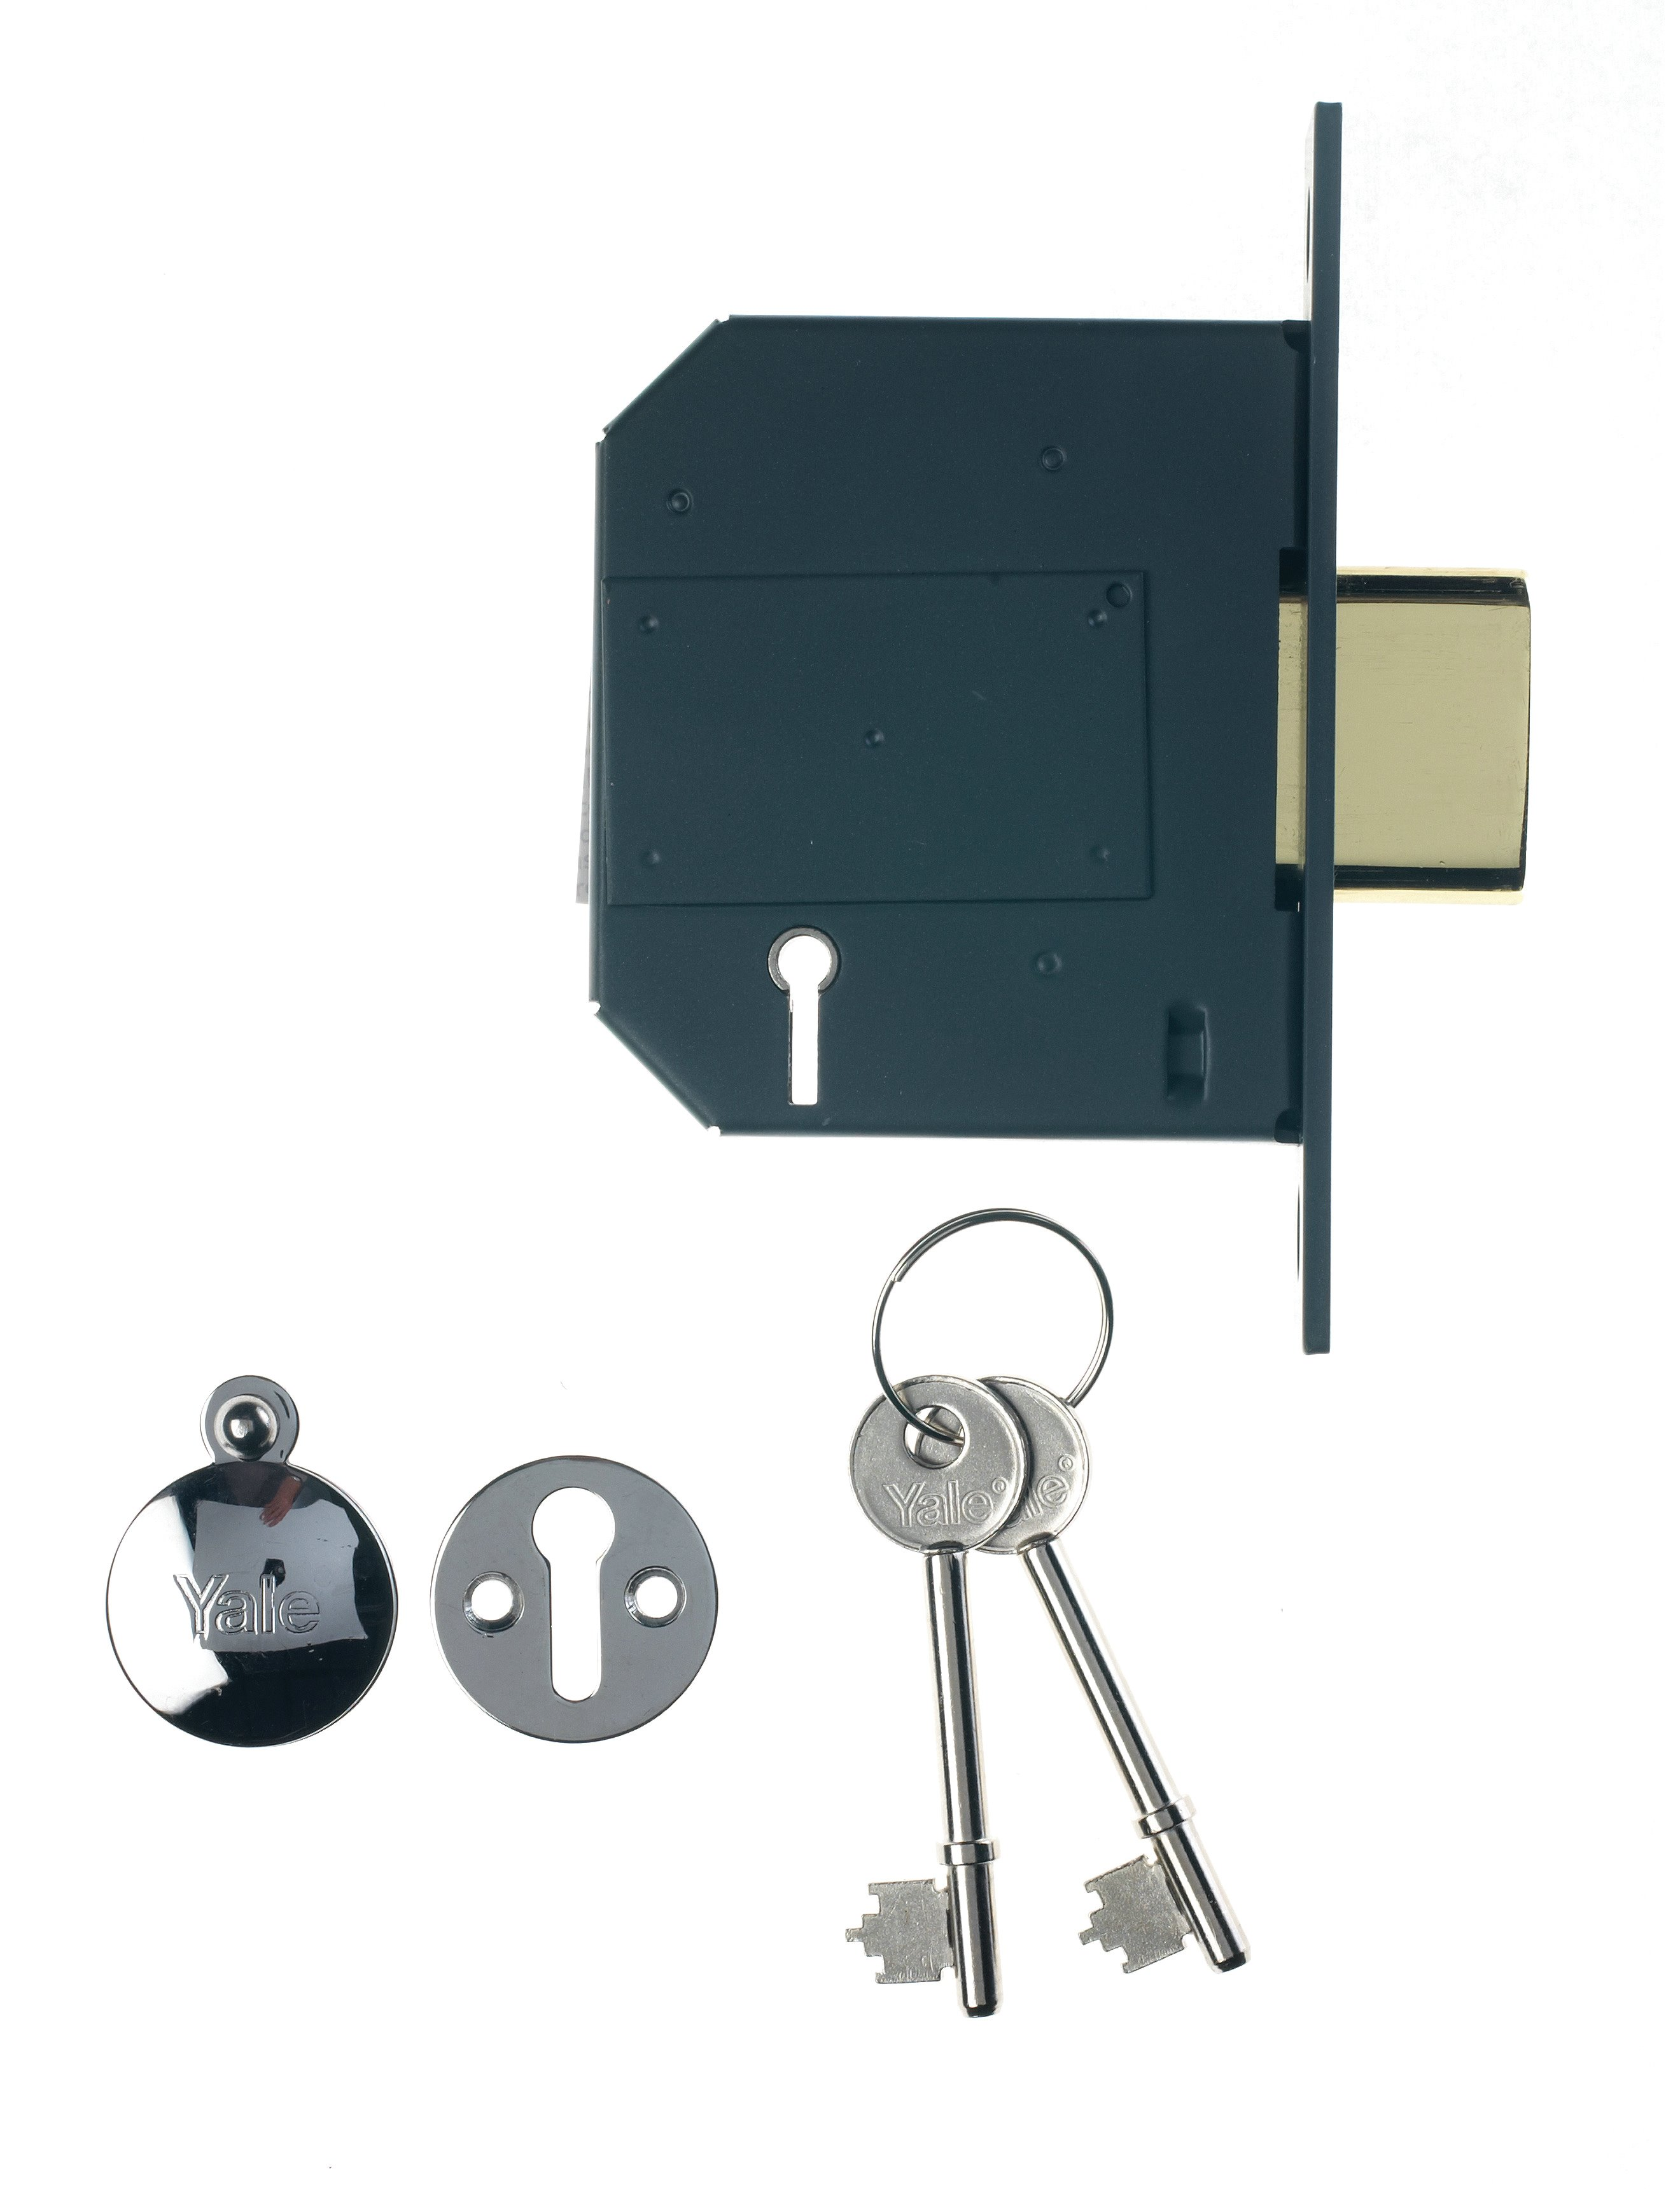 PM562 Maximum Security BS3621:2007 Deadlock